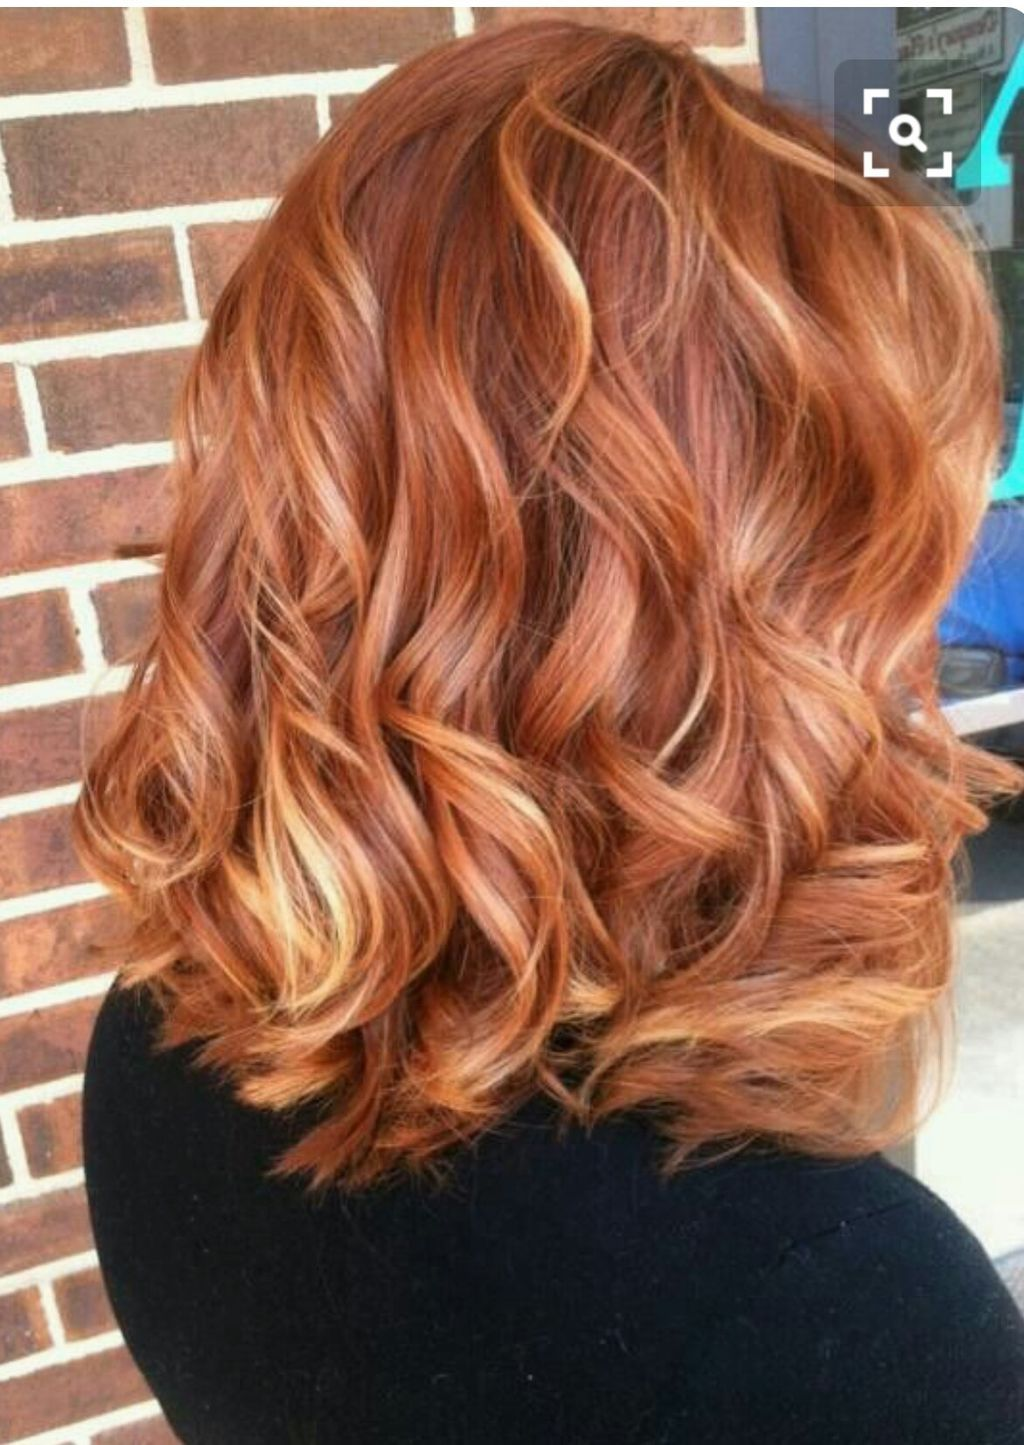 12 Copper Hair Colour Ideas That Would Make Anyone Want to Go Red